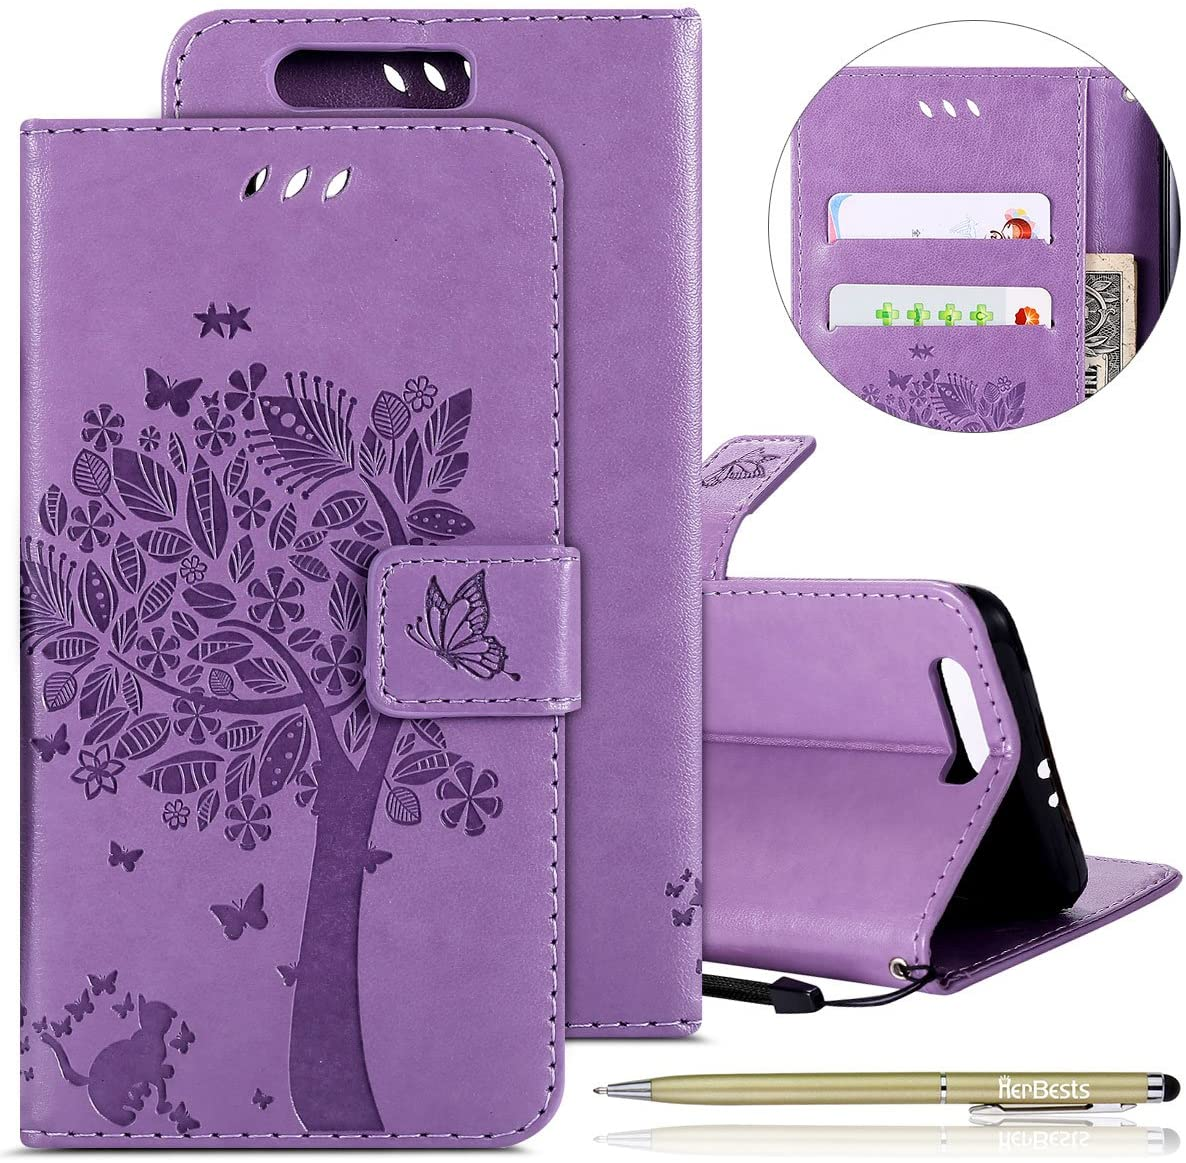 Herbests Compatible with Huawei Honor 9 Wallet Case 3D Embossed Flower Butterfly Tree Cat Flip Leather Case Kickstand Credit Card Wrist Strap Full Body Protective Phone Case,Light Purple